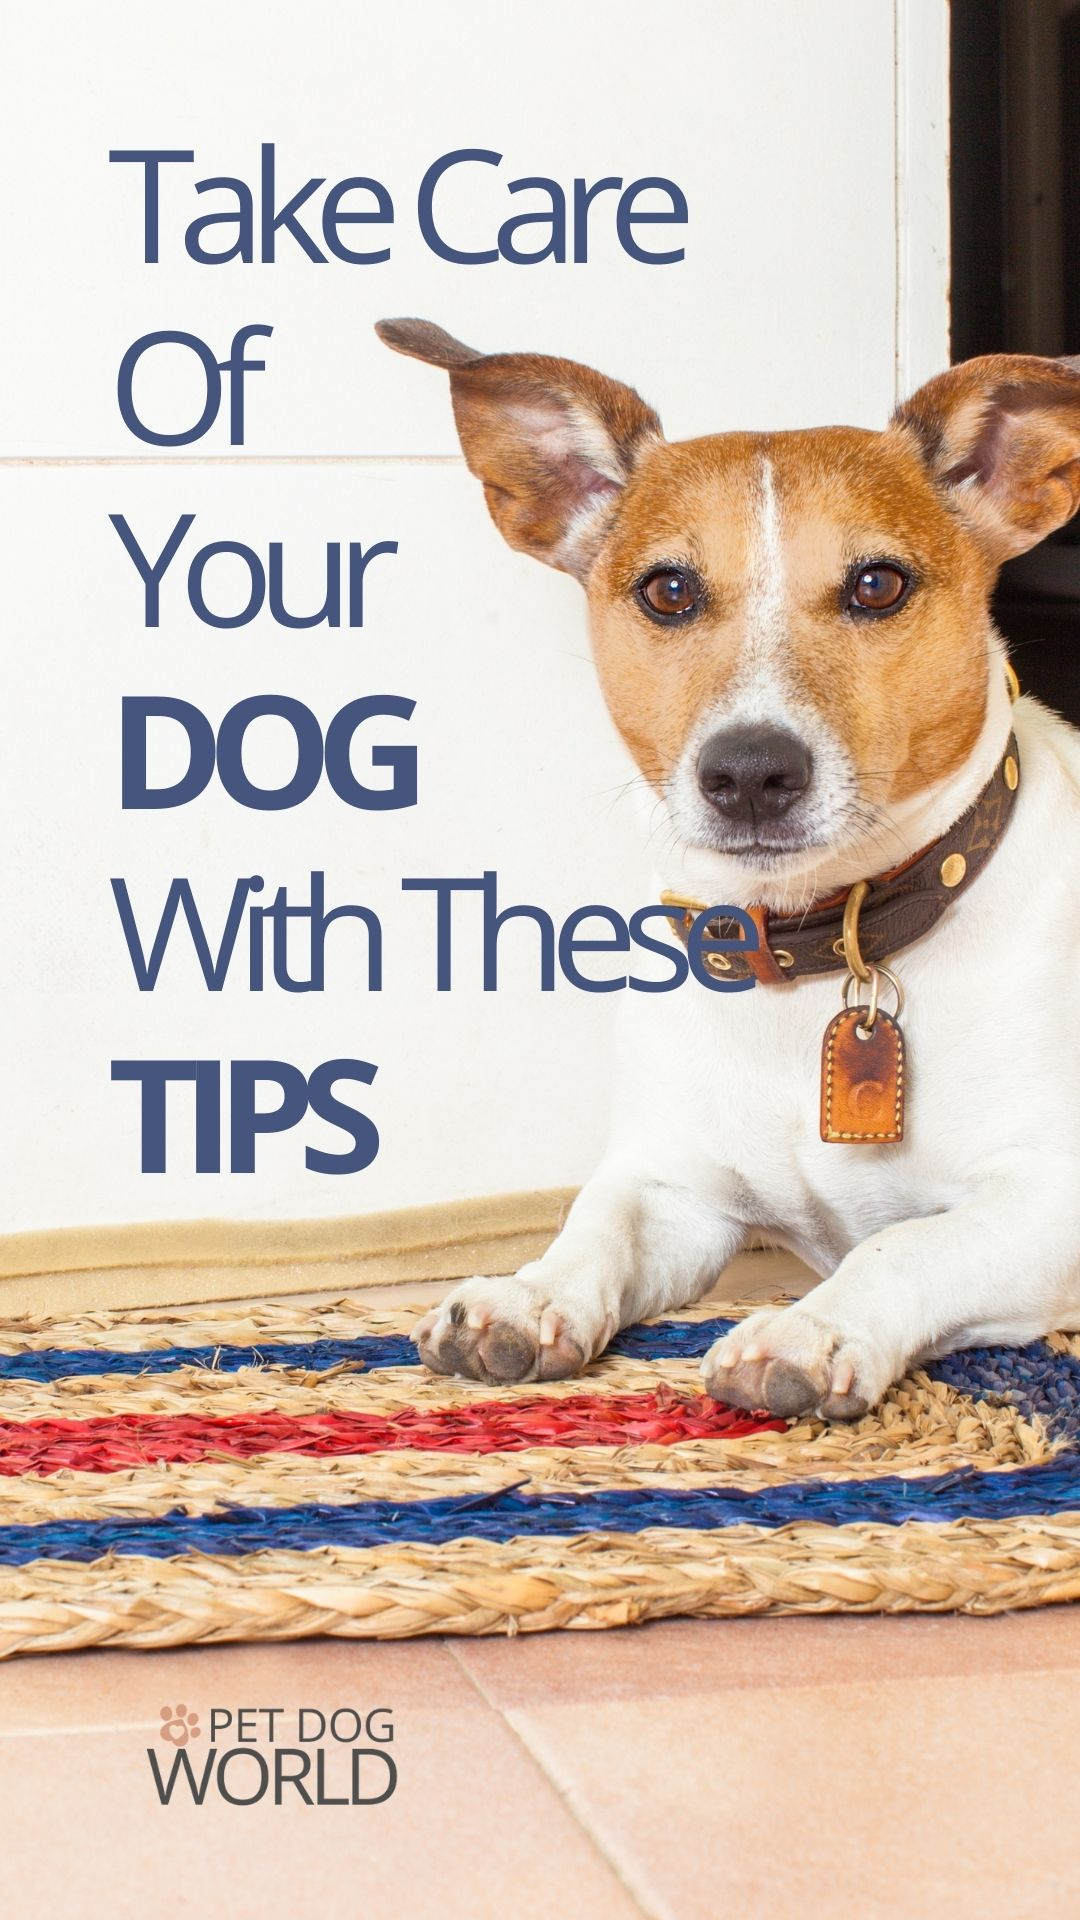 Follow these tips to take good care of your dog.